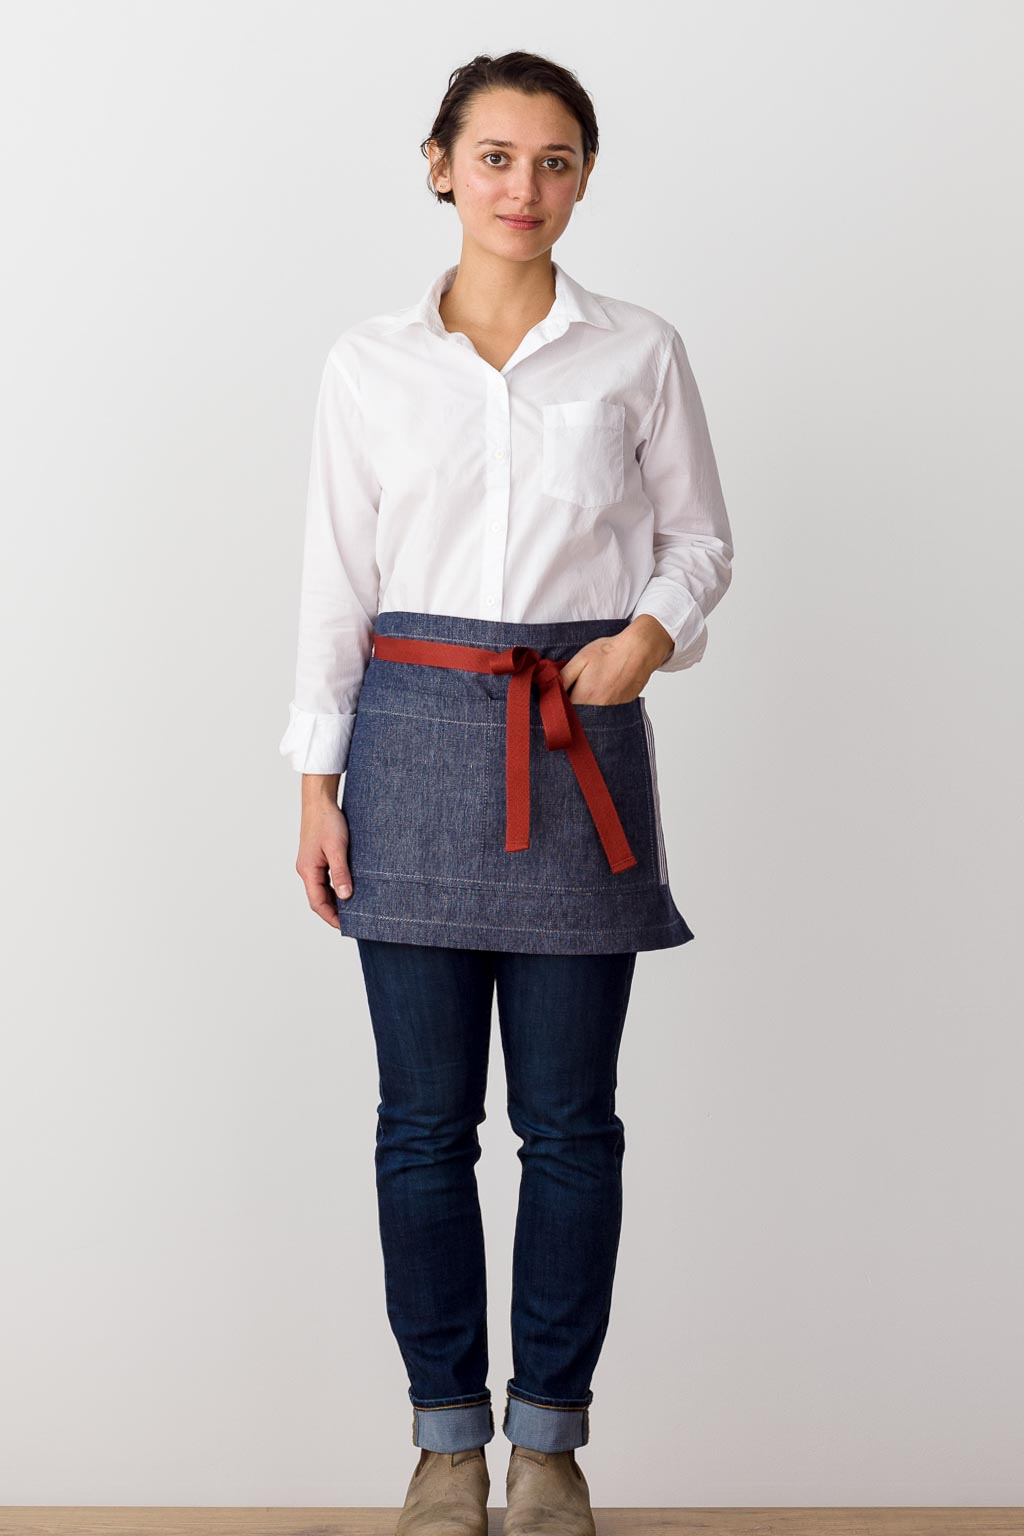 Bistro Shorty Apron Blue Denim with Red Straps, for Men or Women